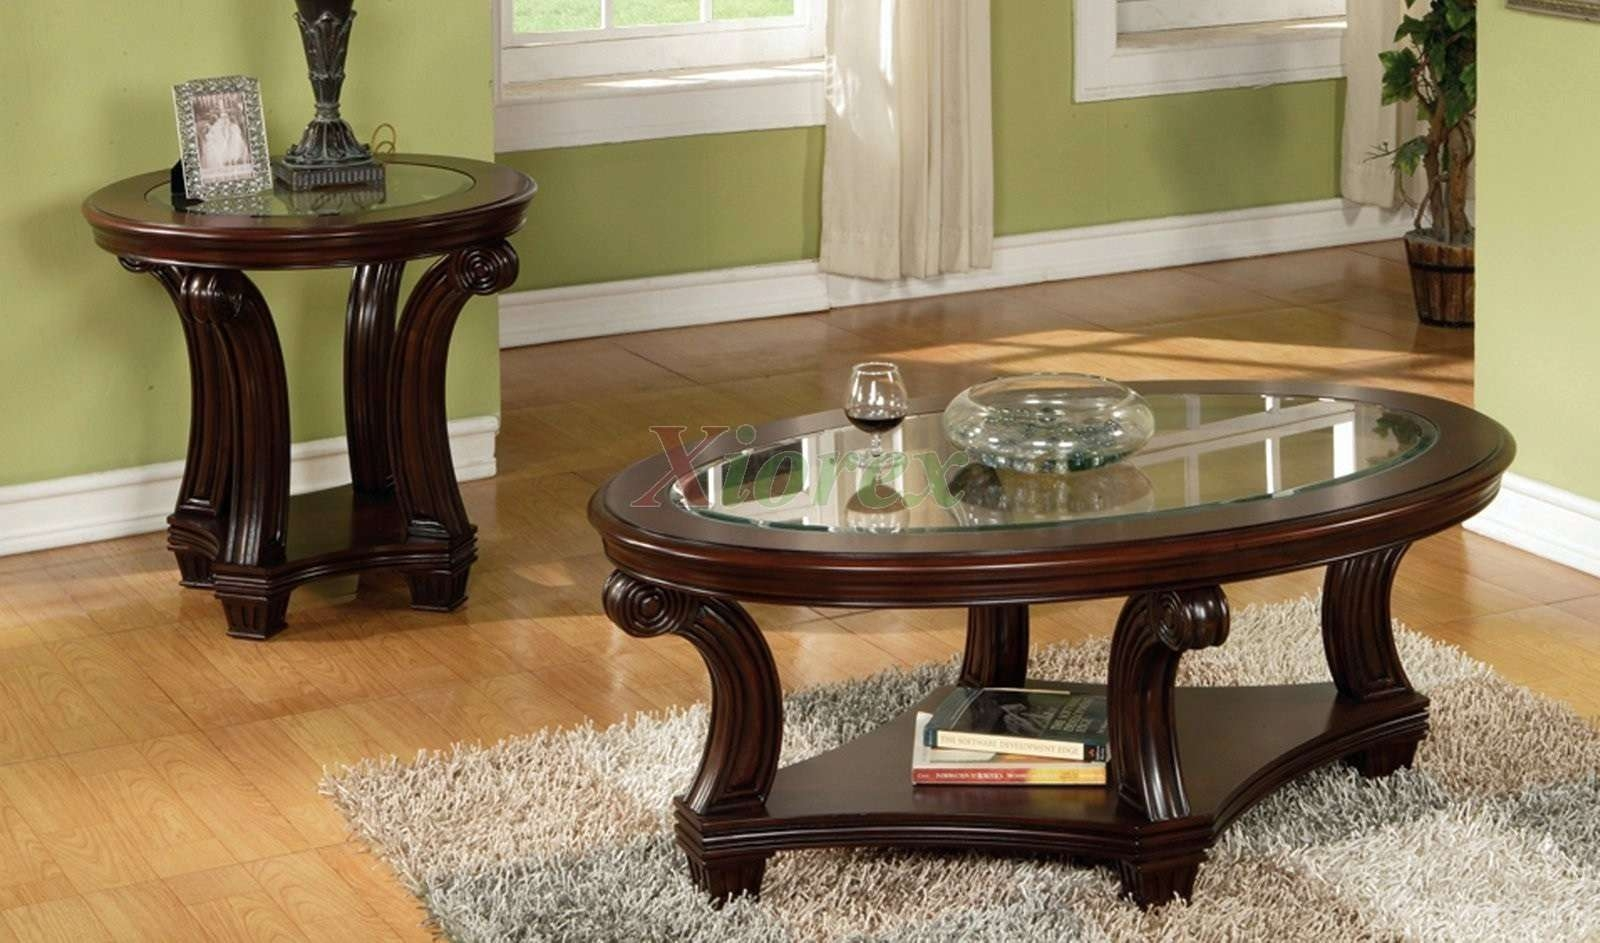 Dark Wood Coffee Table With Glass Top – Solid Hardwood Table Legs Pertaining To Popular Dark Wood Coffee Tables With Glass Top (View 2 of 23)